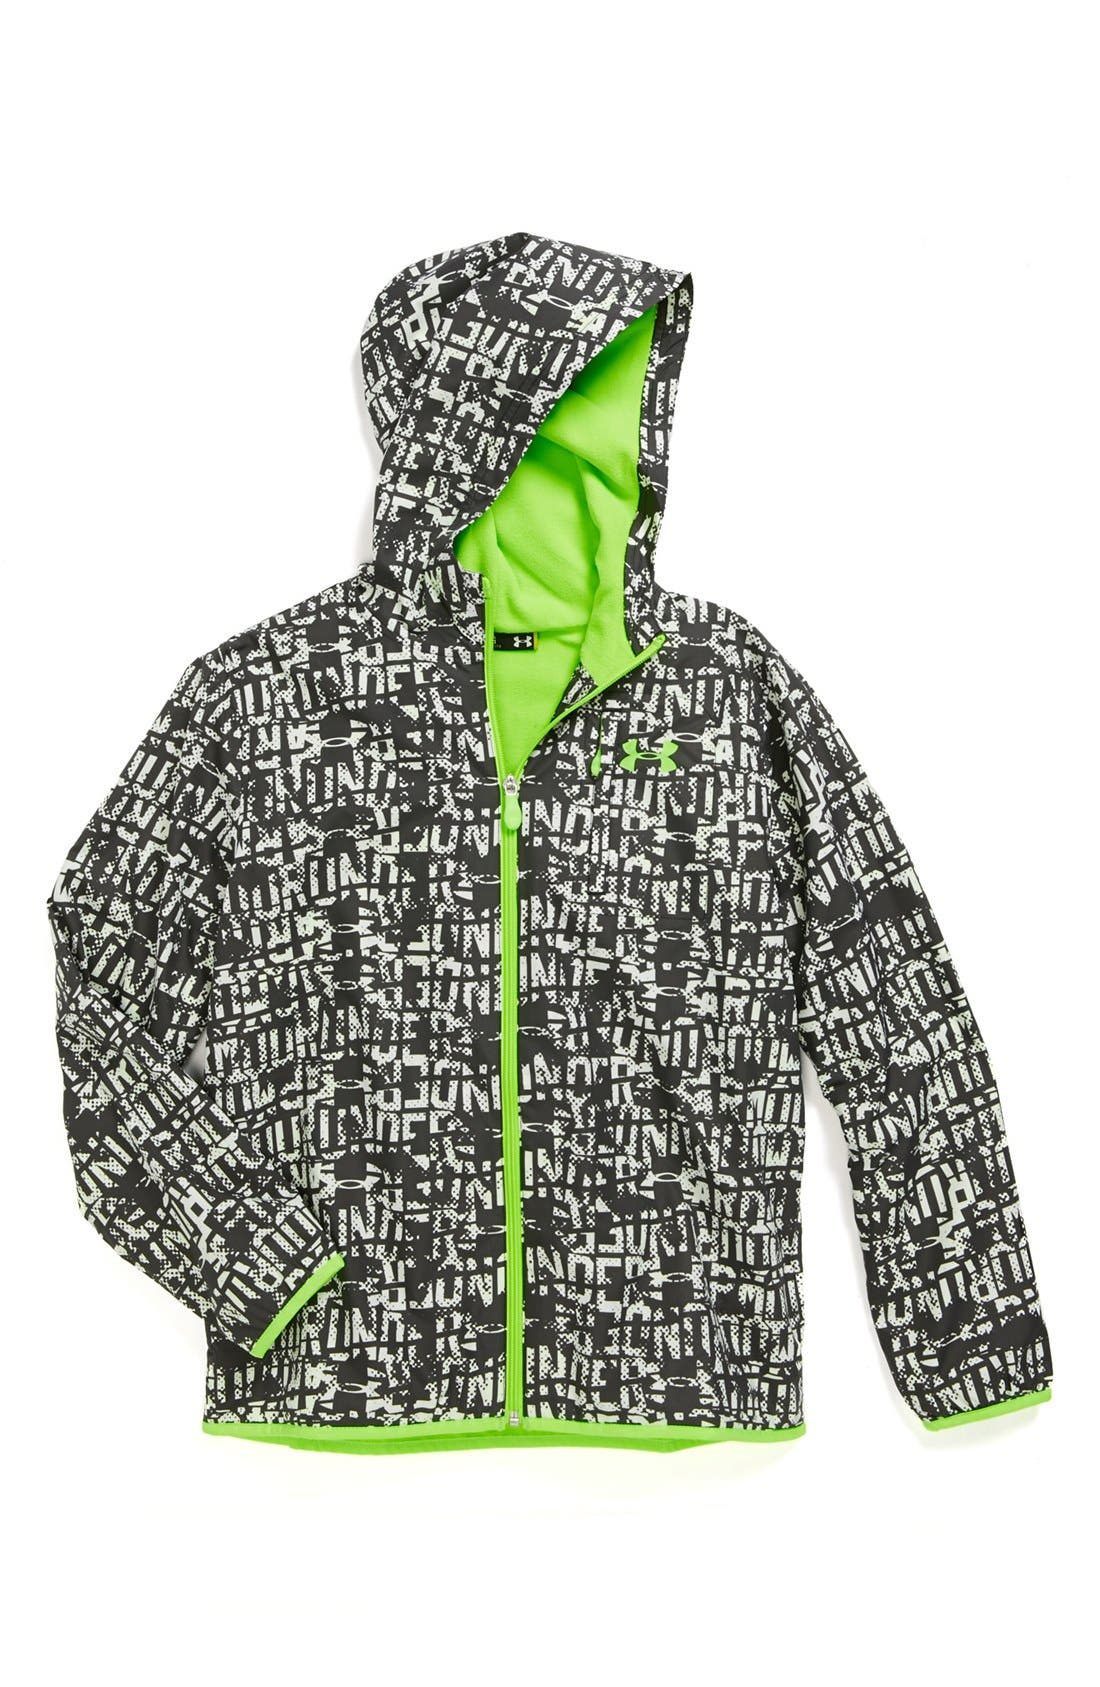 Alternate Image 1 Selected - Under Armour 'Captivate' Jacket (Big Boys)